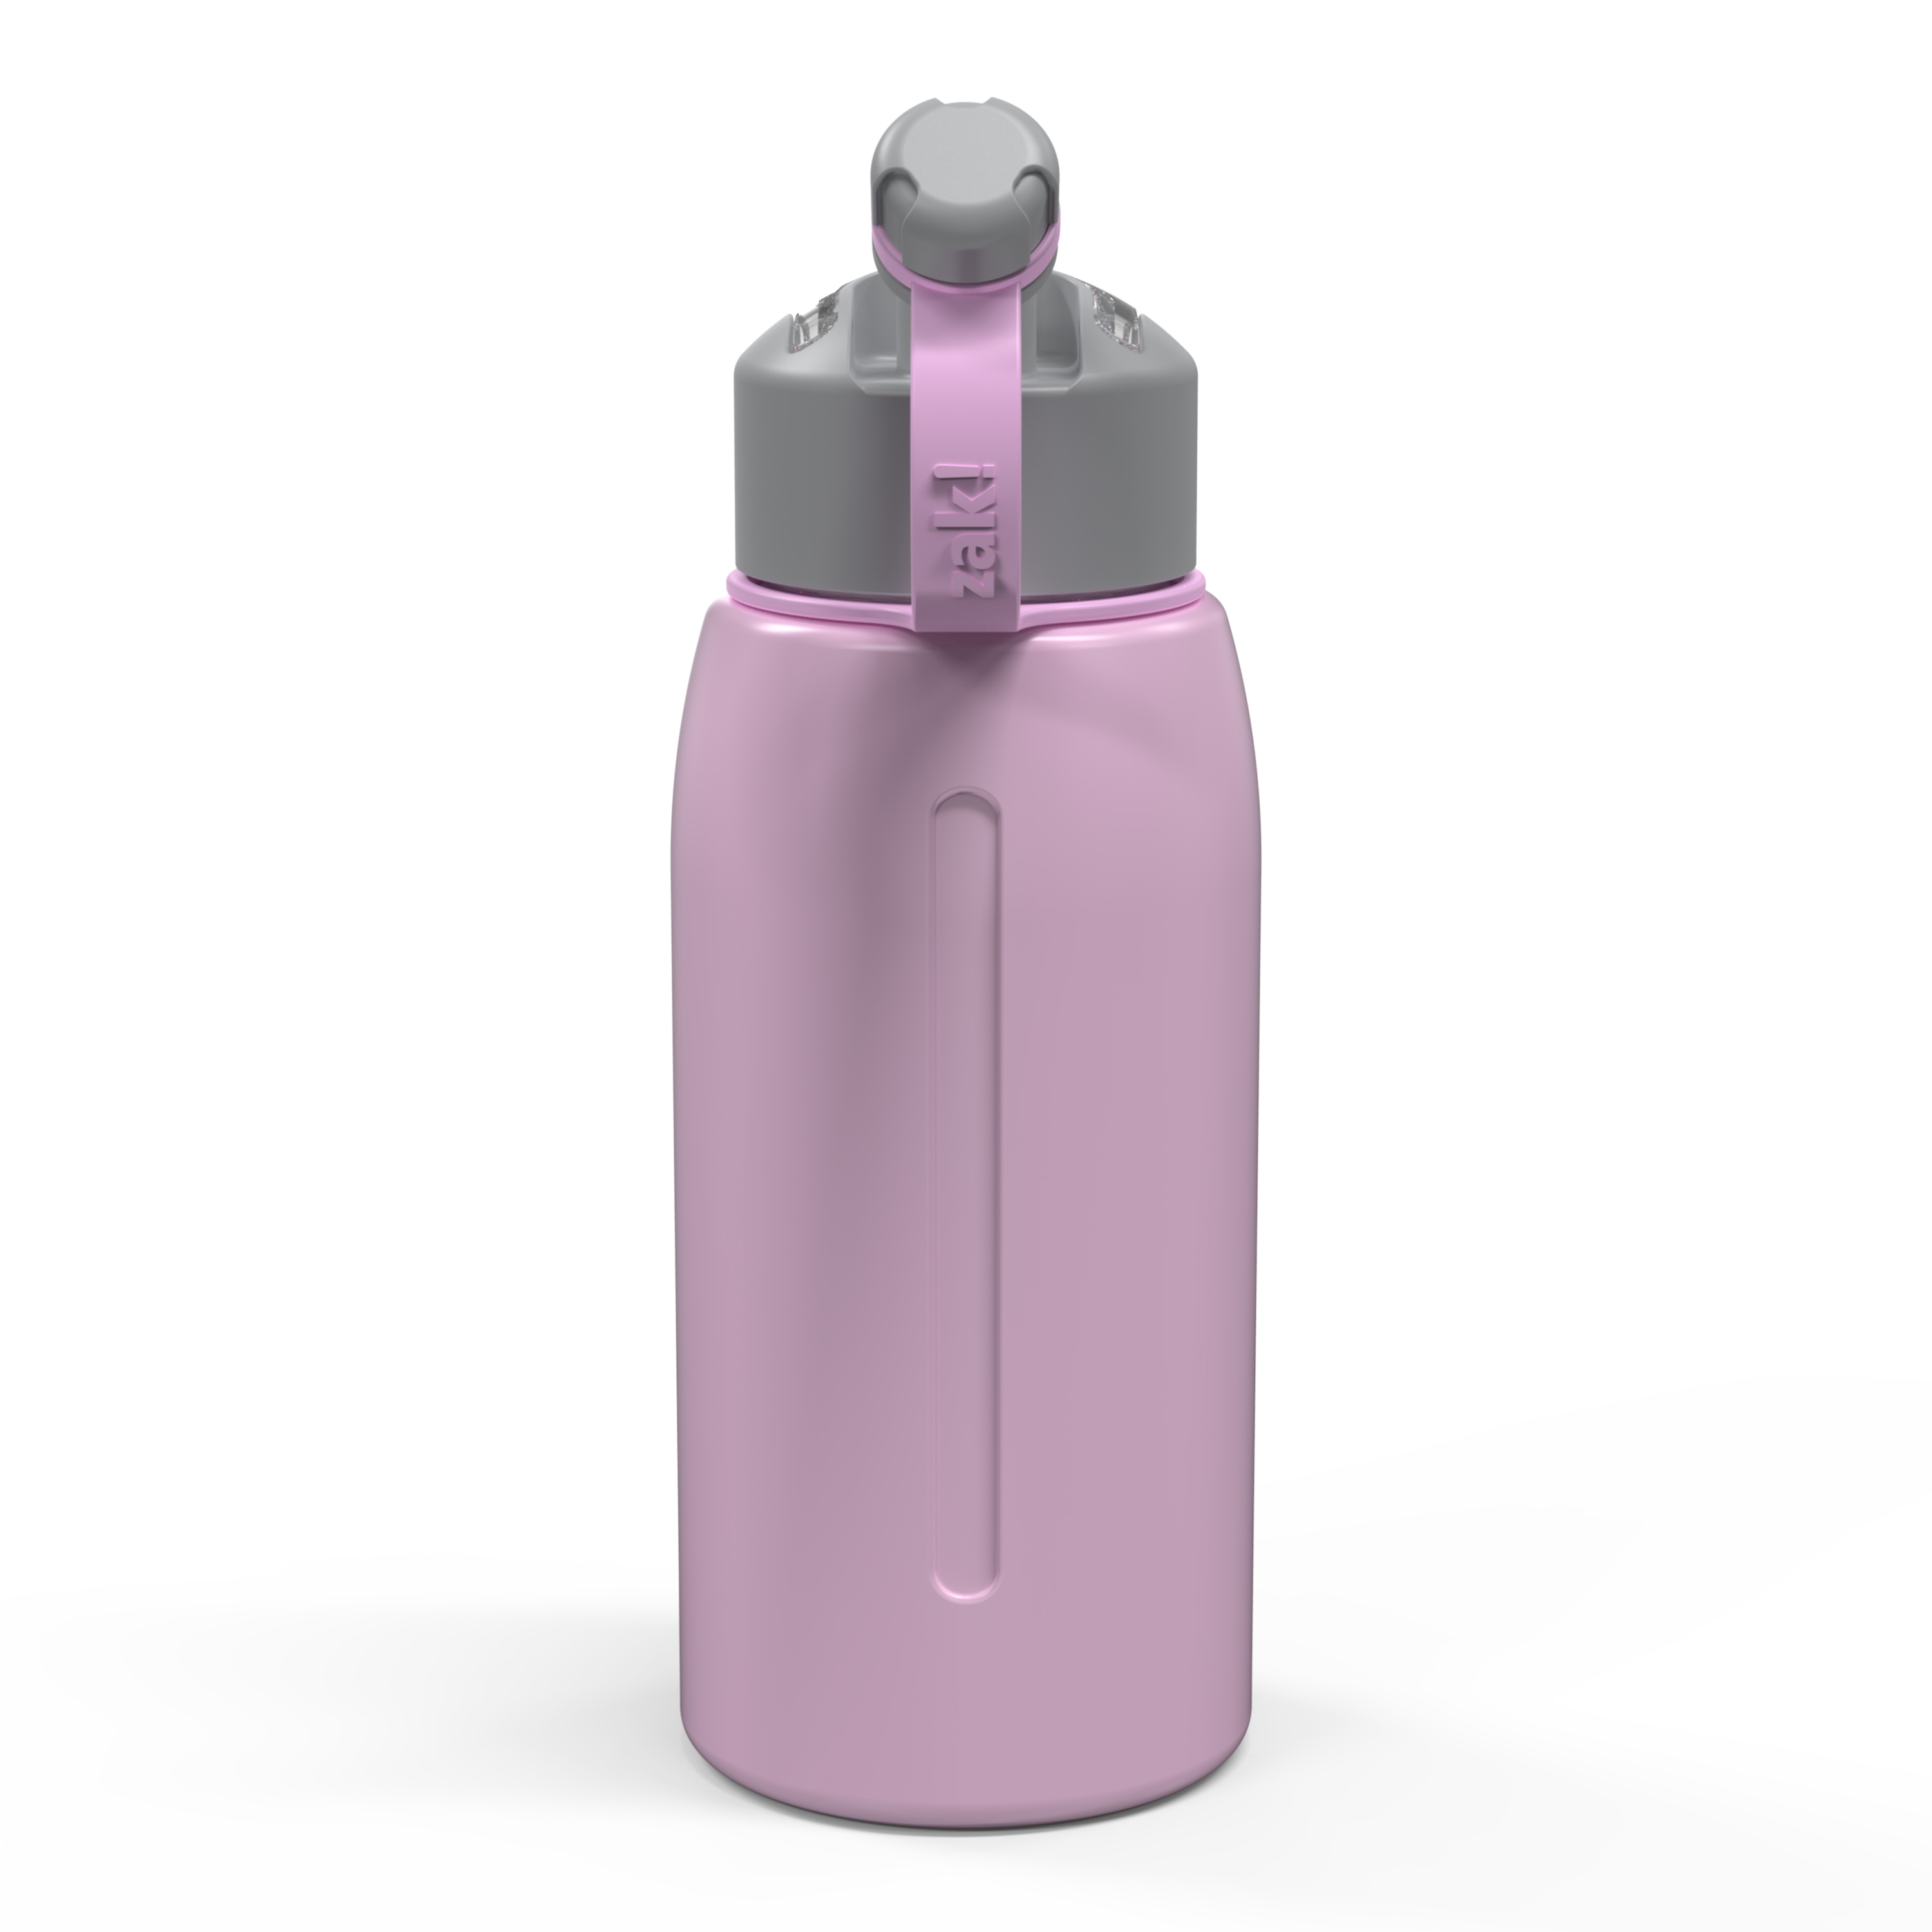 Genesis 32 ounce Vacuum Insulated Stainless Steel Tumbler, Lilac slideshow image 7